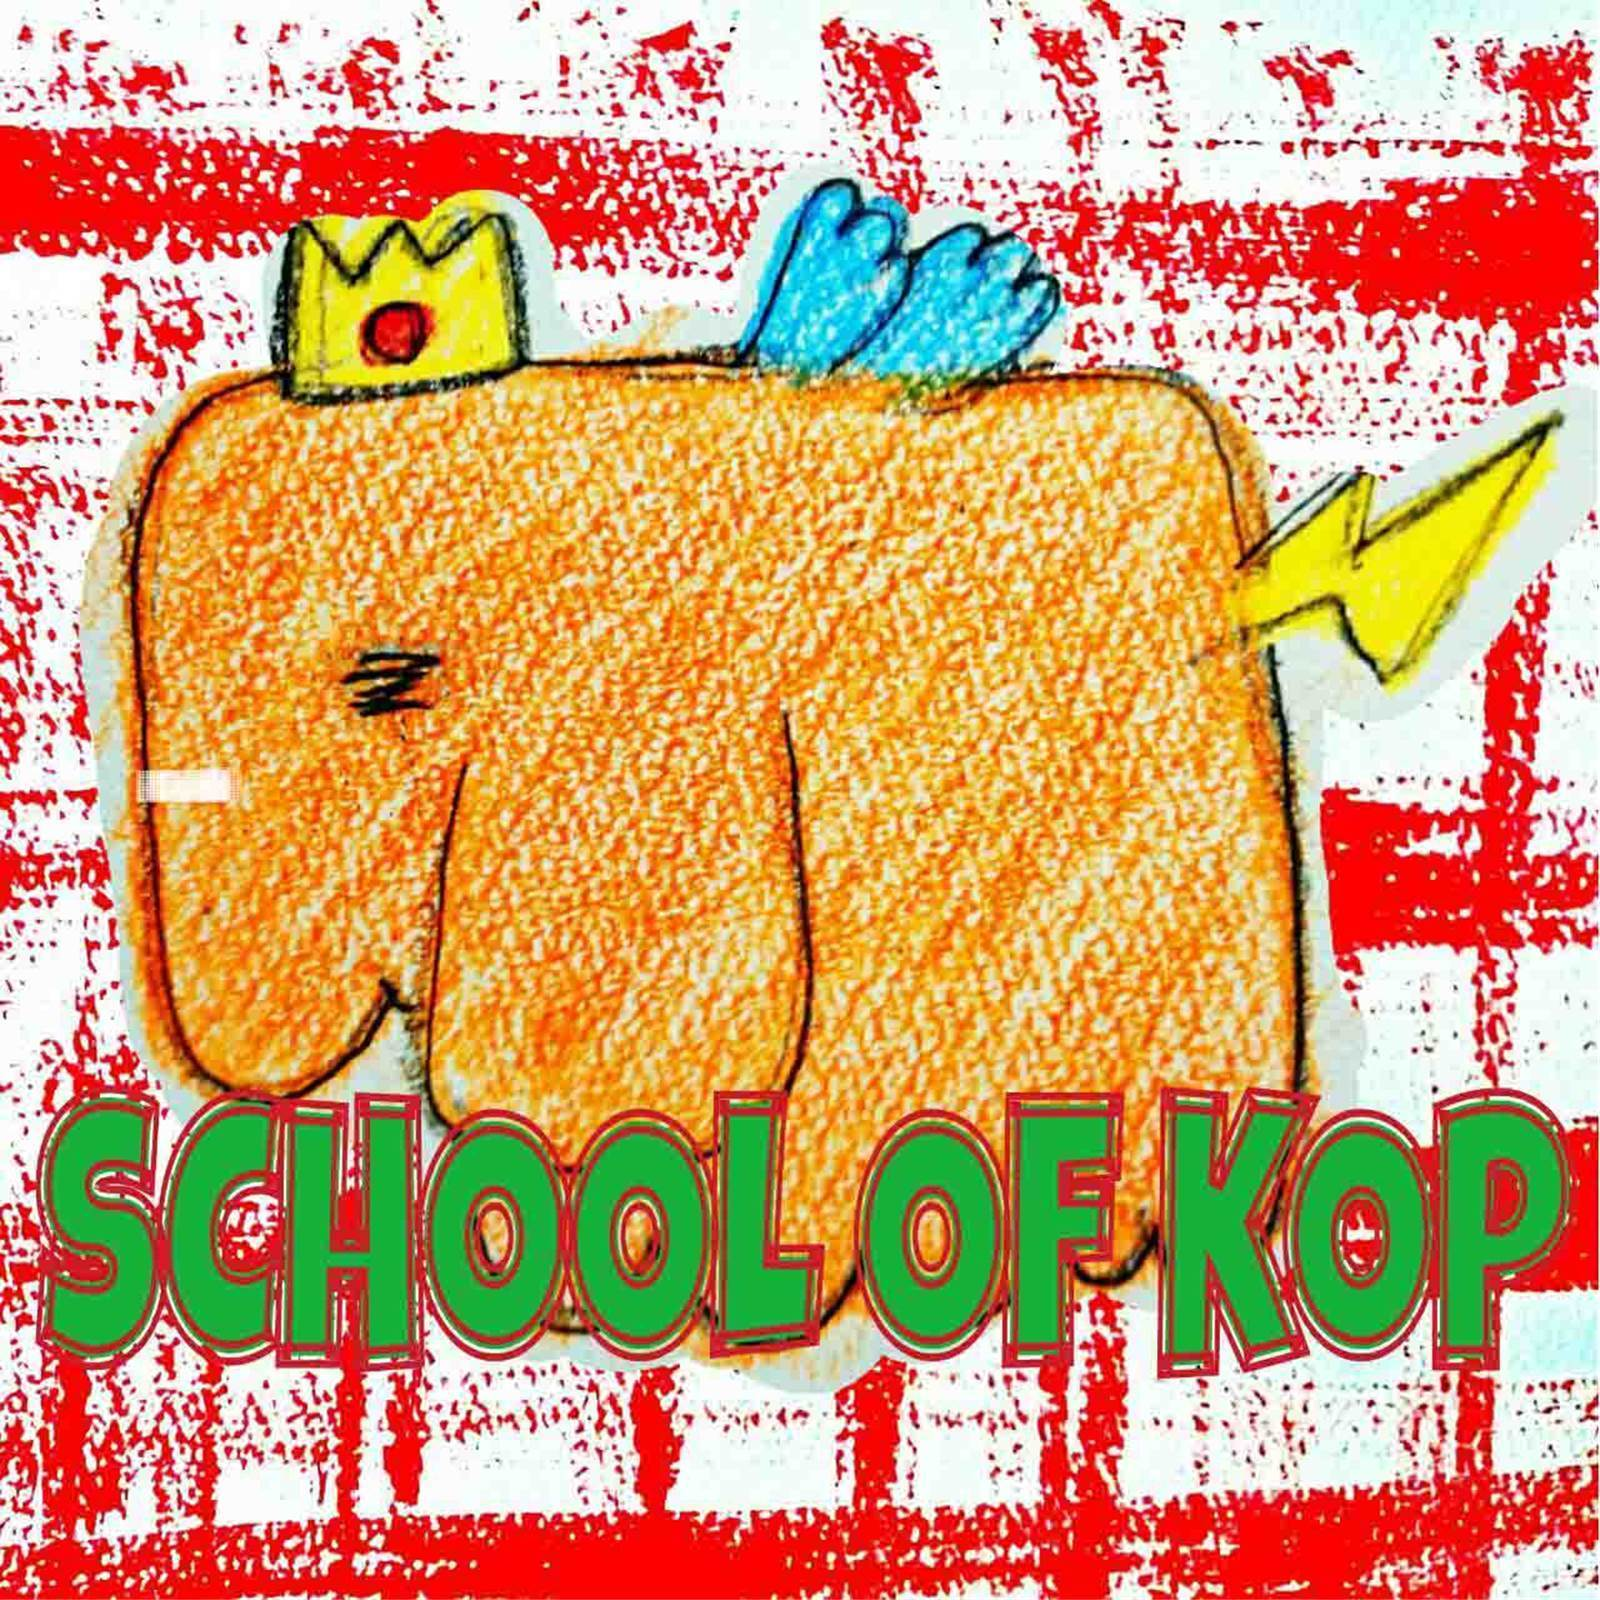 SCHOOL OF KOP